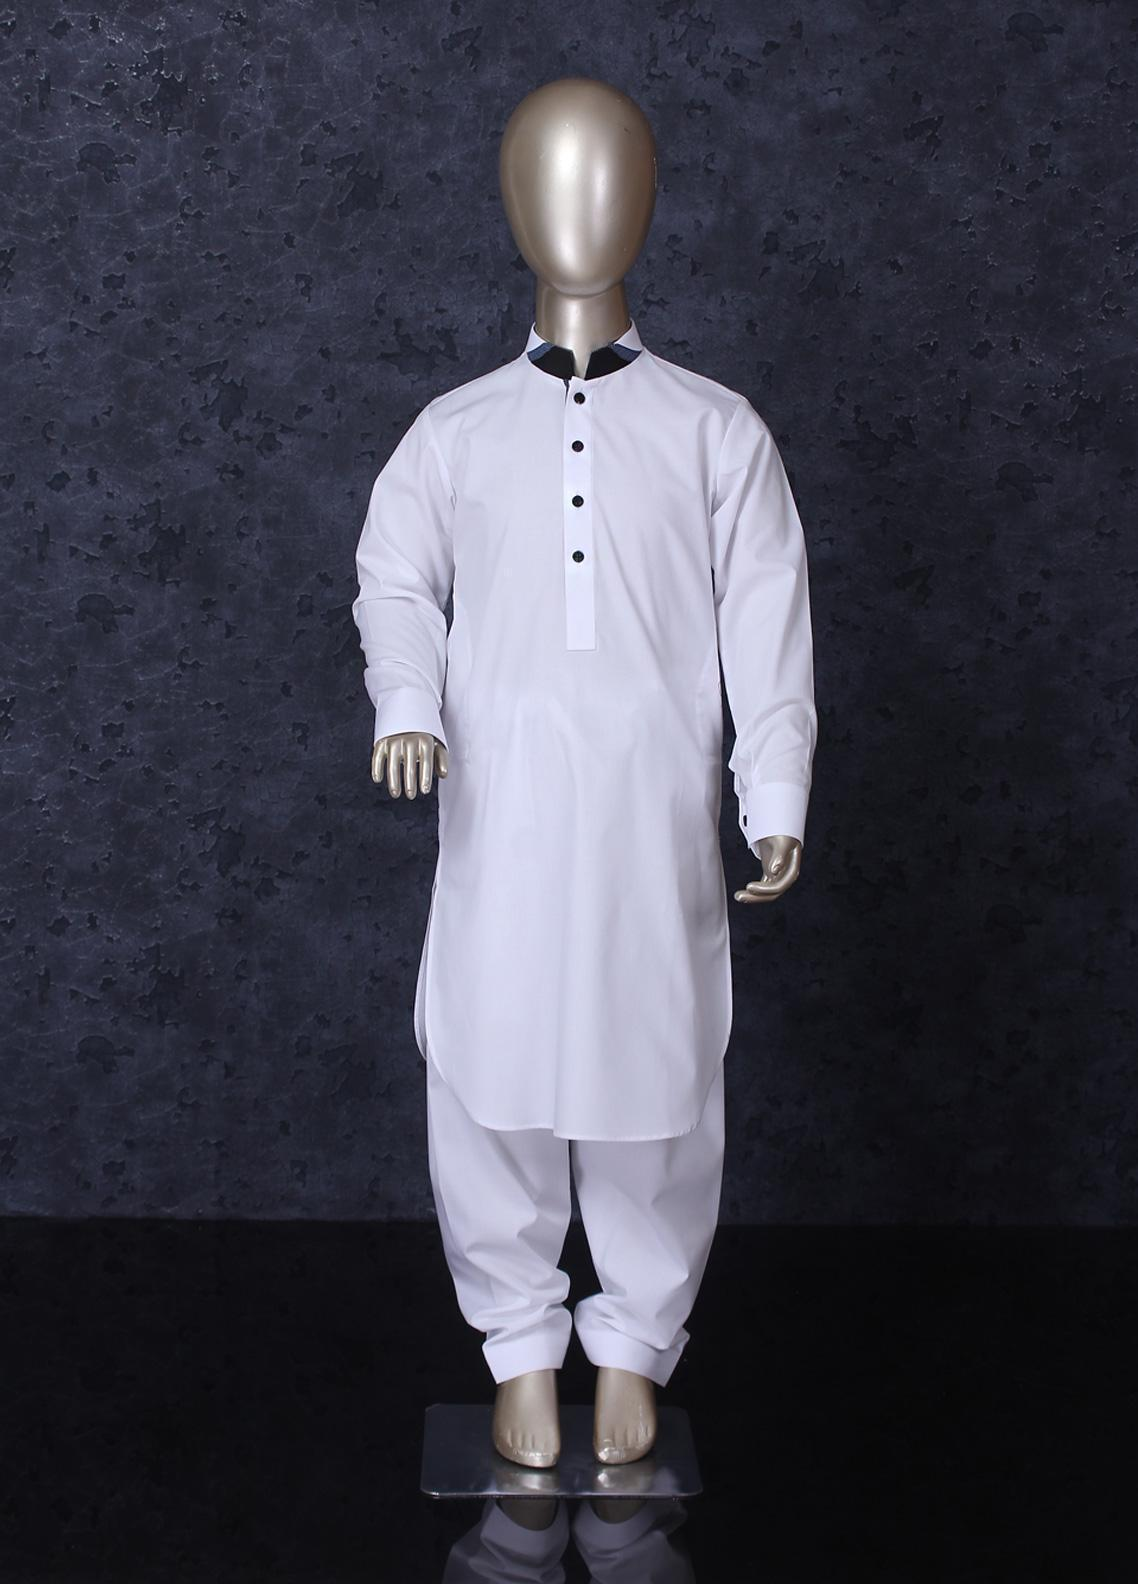 Aizaz Zafar Cotton Formal Boys Kameez Shalwar -  255 White